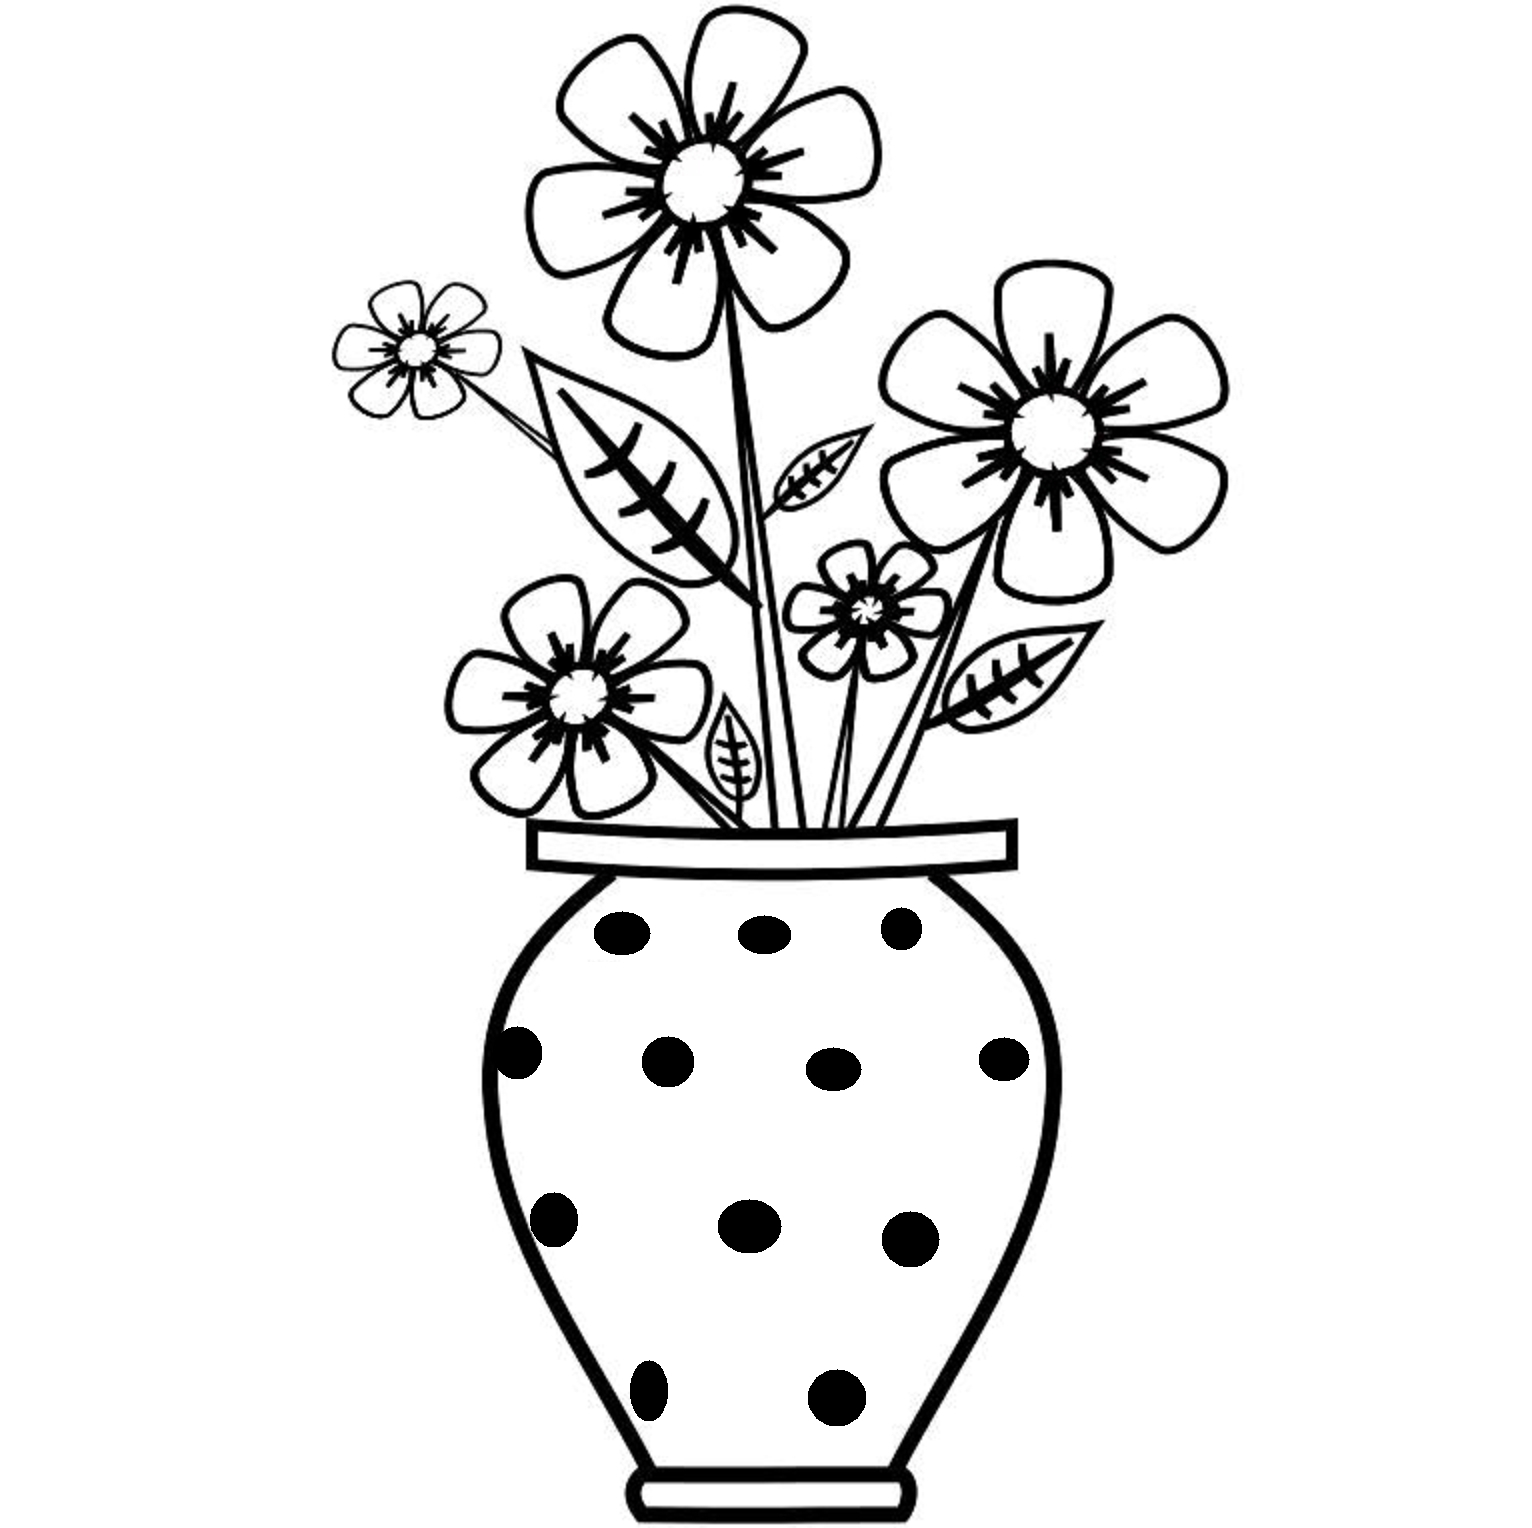 1532x1528 Line Drawing Of Vases Of Flowers Gallery Flower Vase Drawing